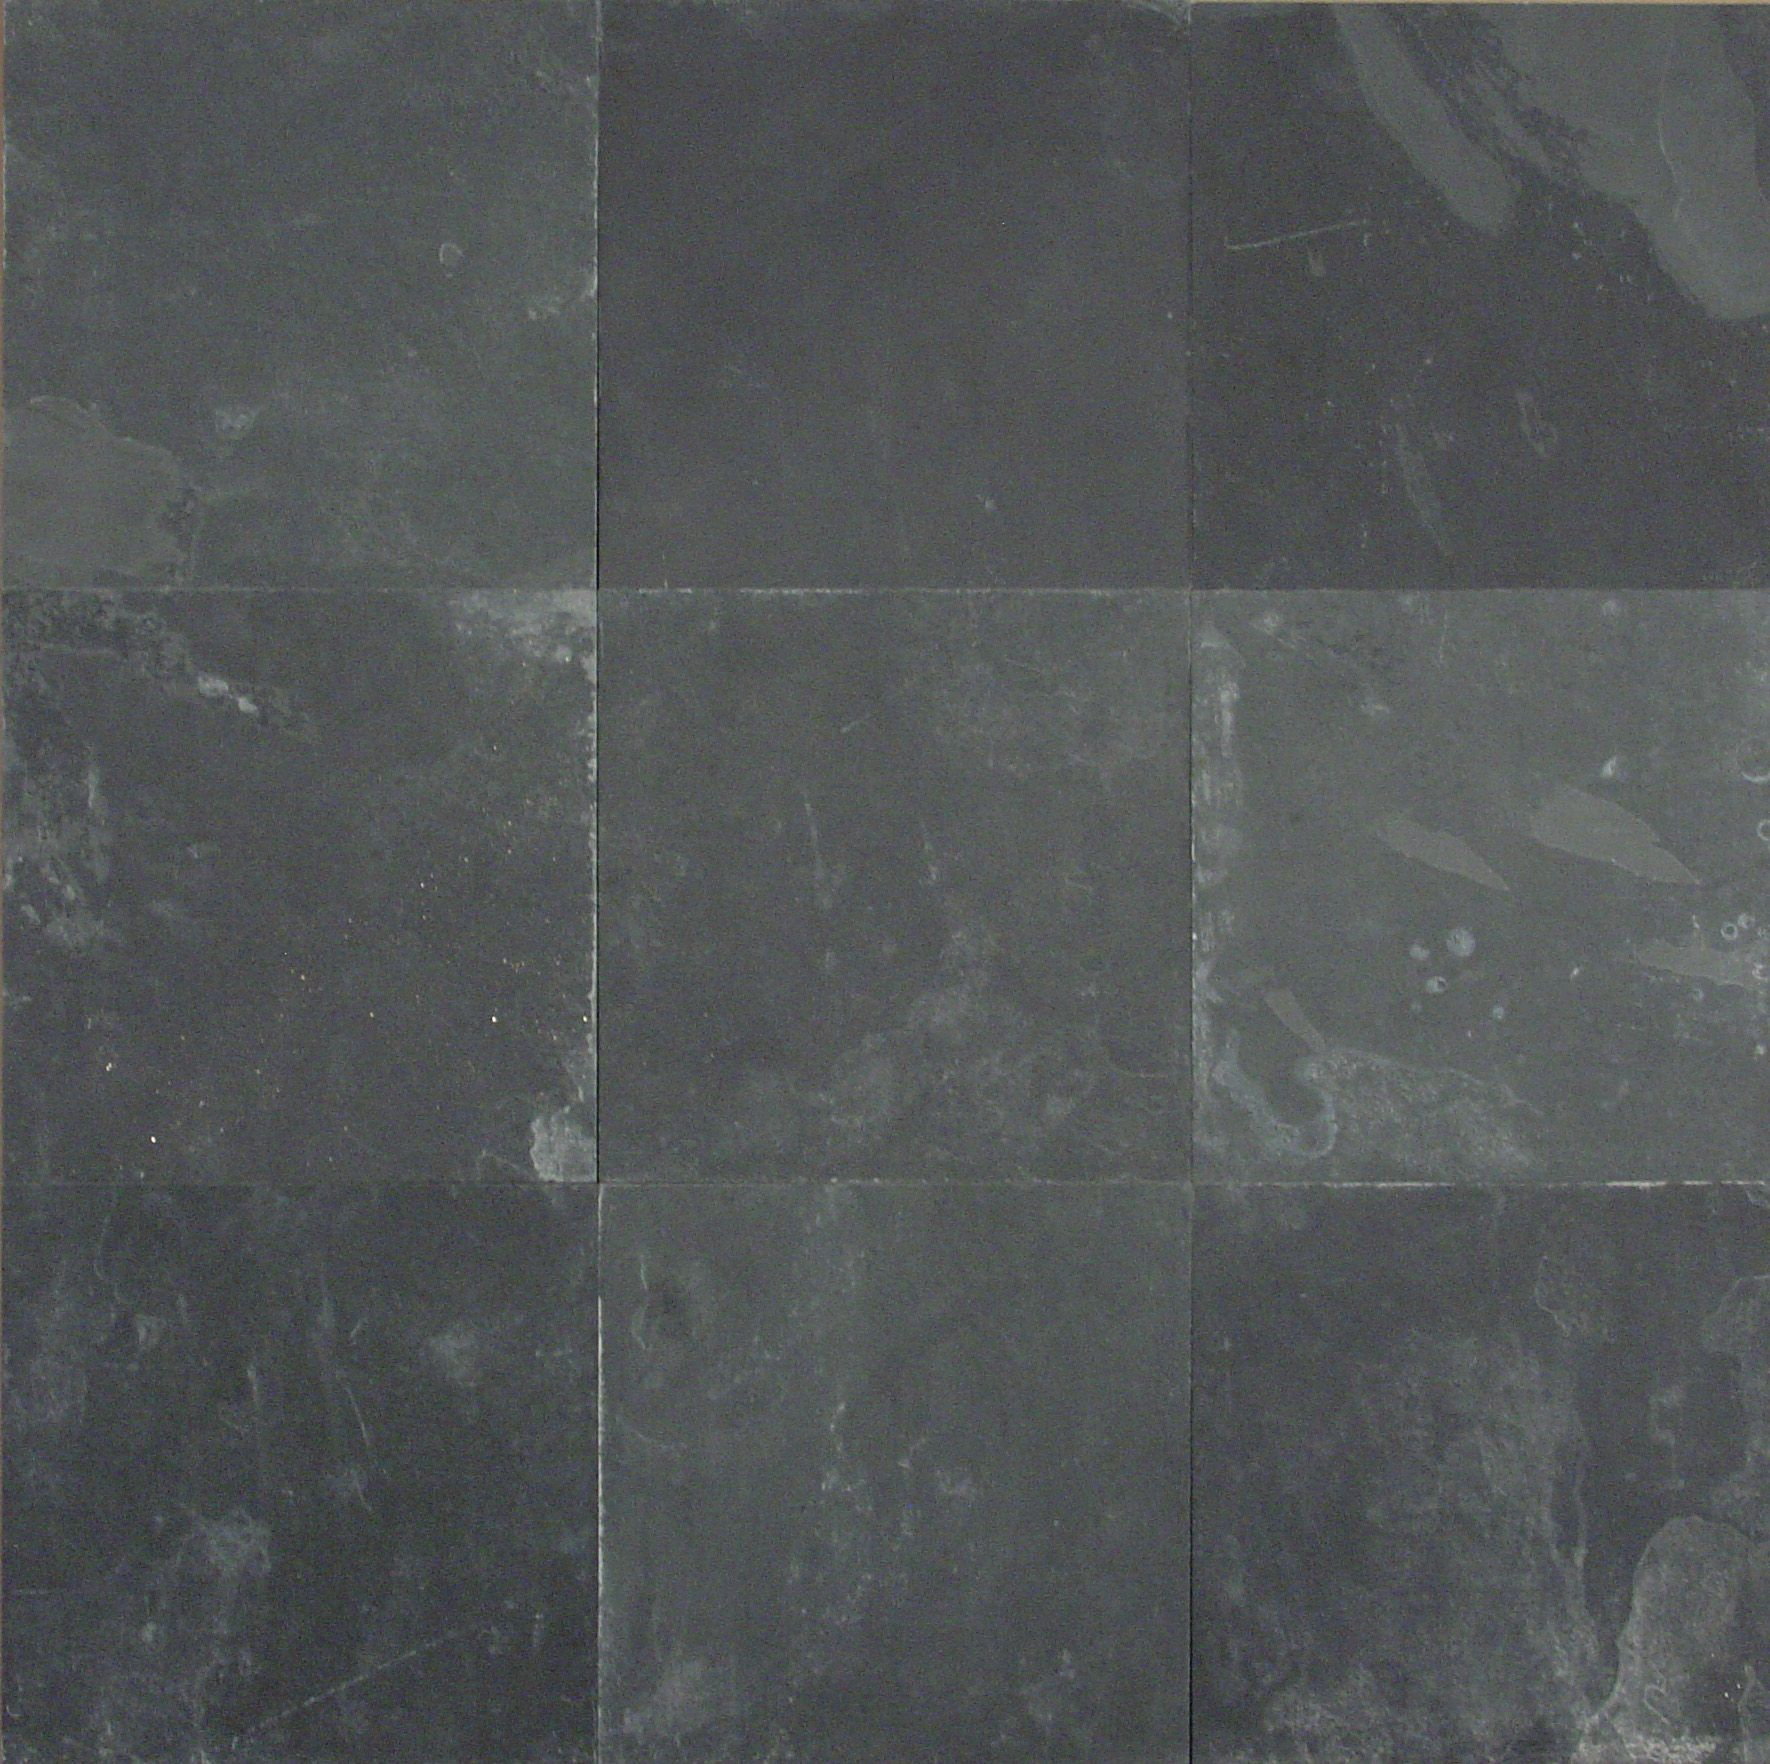 Captivating Montauk Black 12x12x38 Gauged Slate Tileswater Damagetextures  Patternstownhousebricksflooringwalldetails   Stone Floor Tiles Texture Amazing Ideas